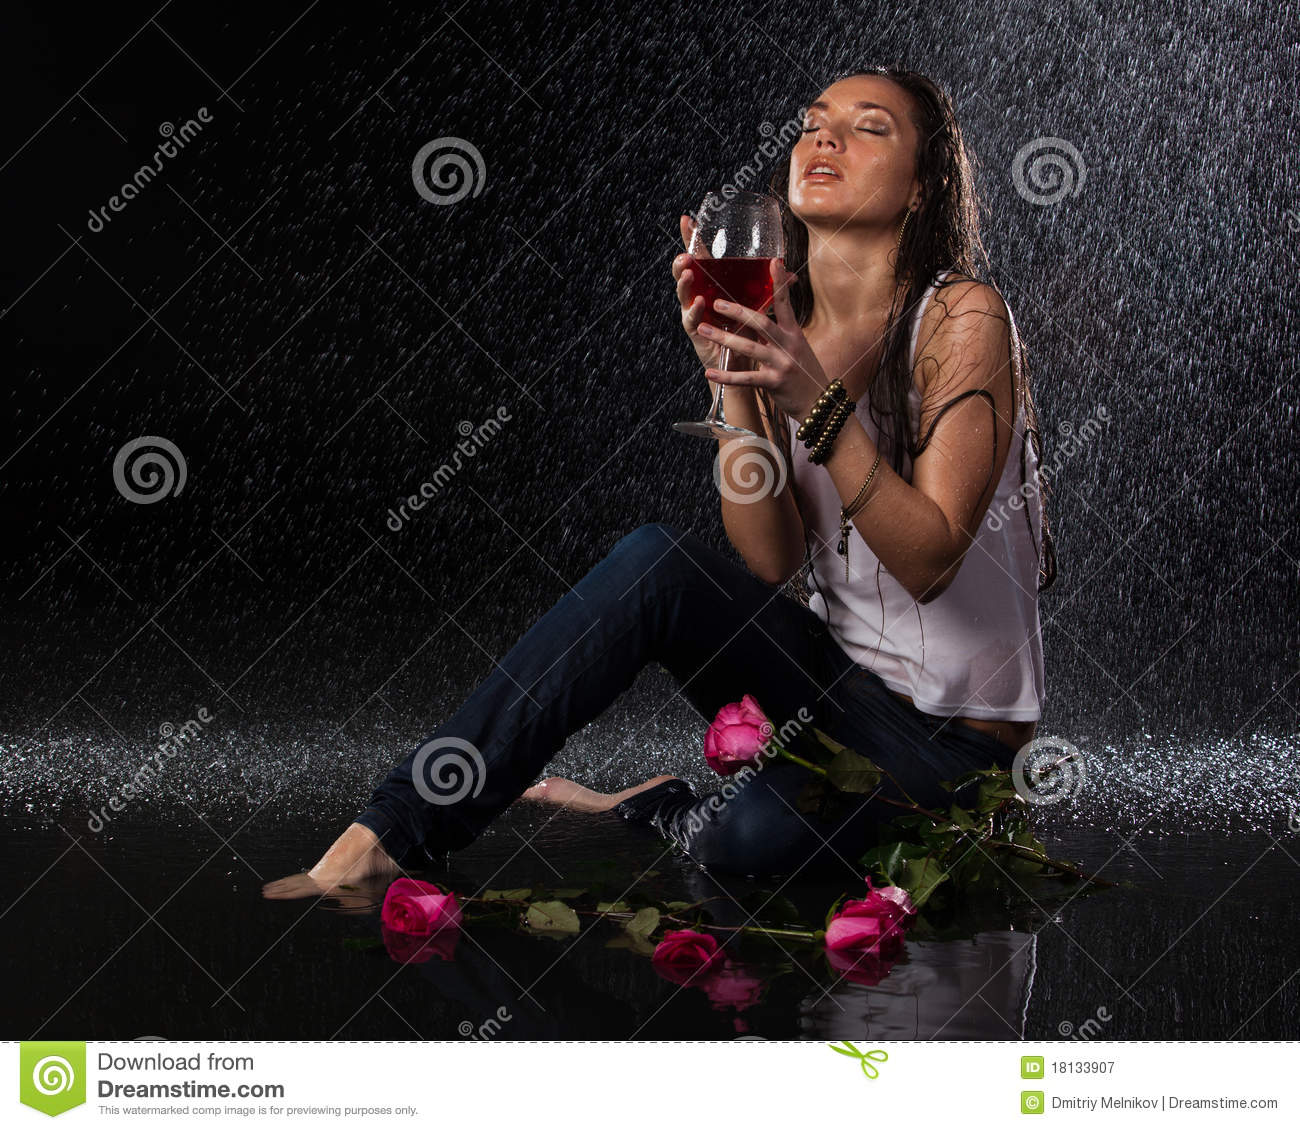 Woman with and glass of wine under rain.